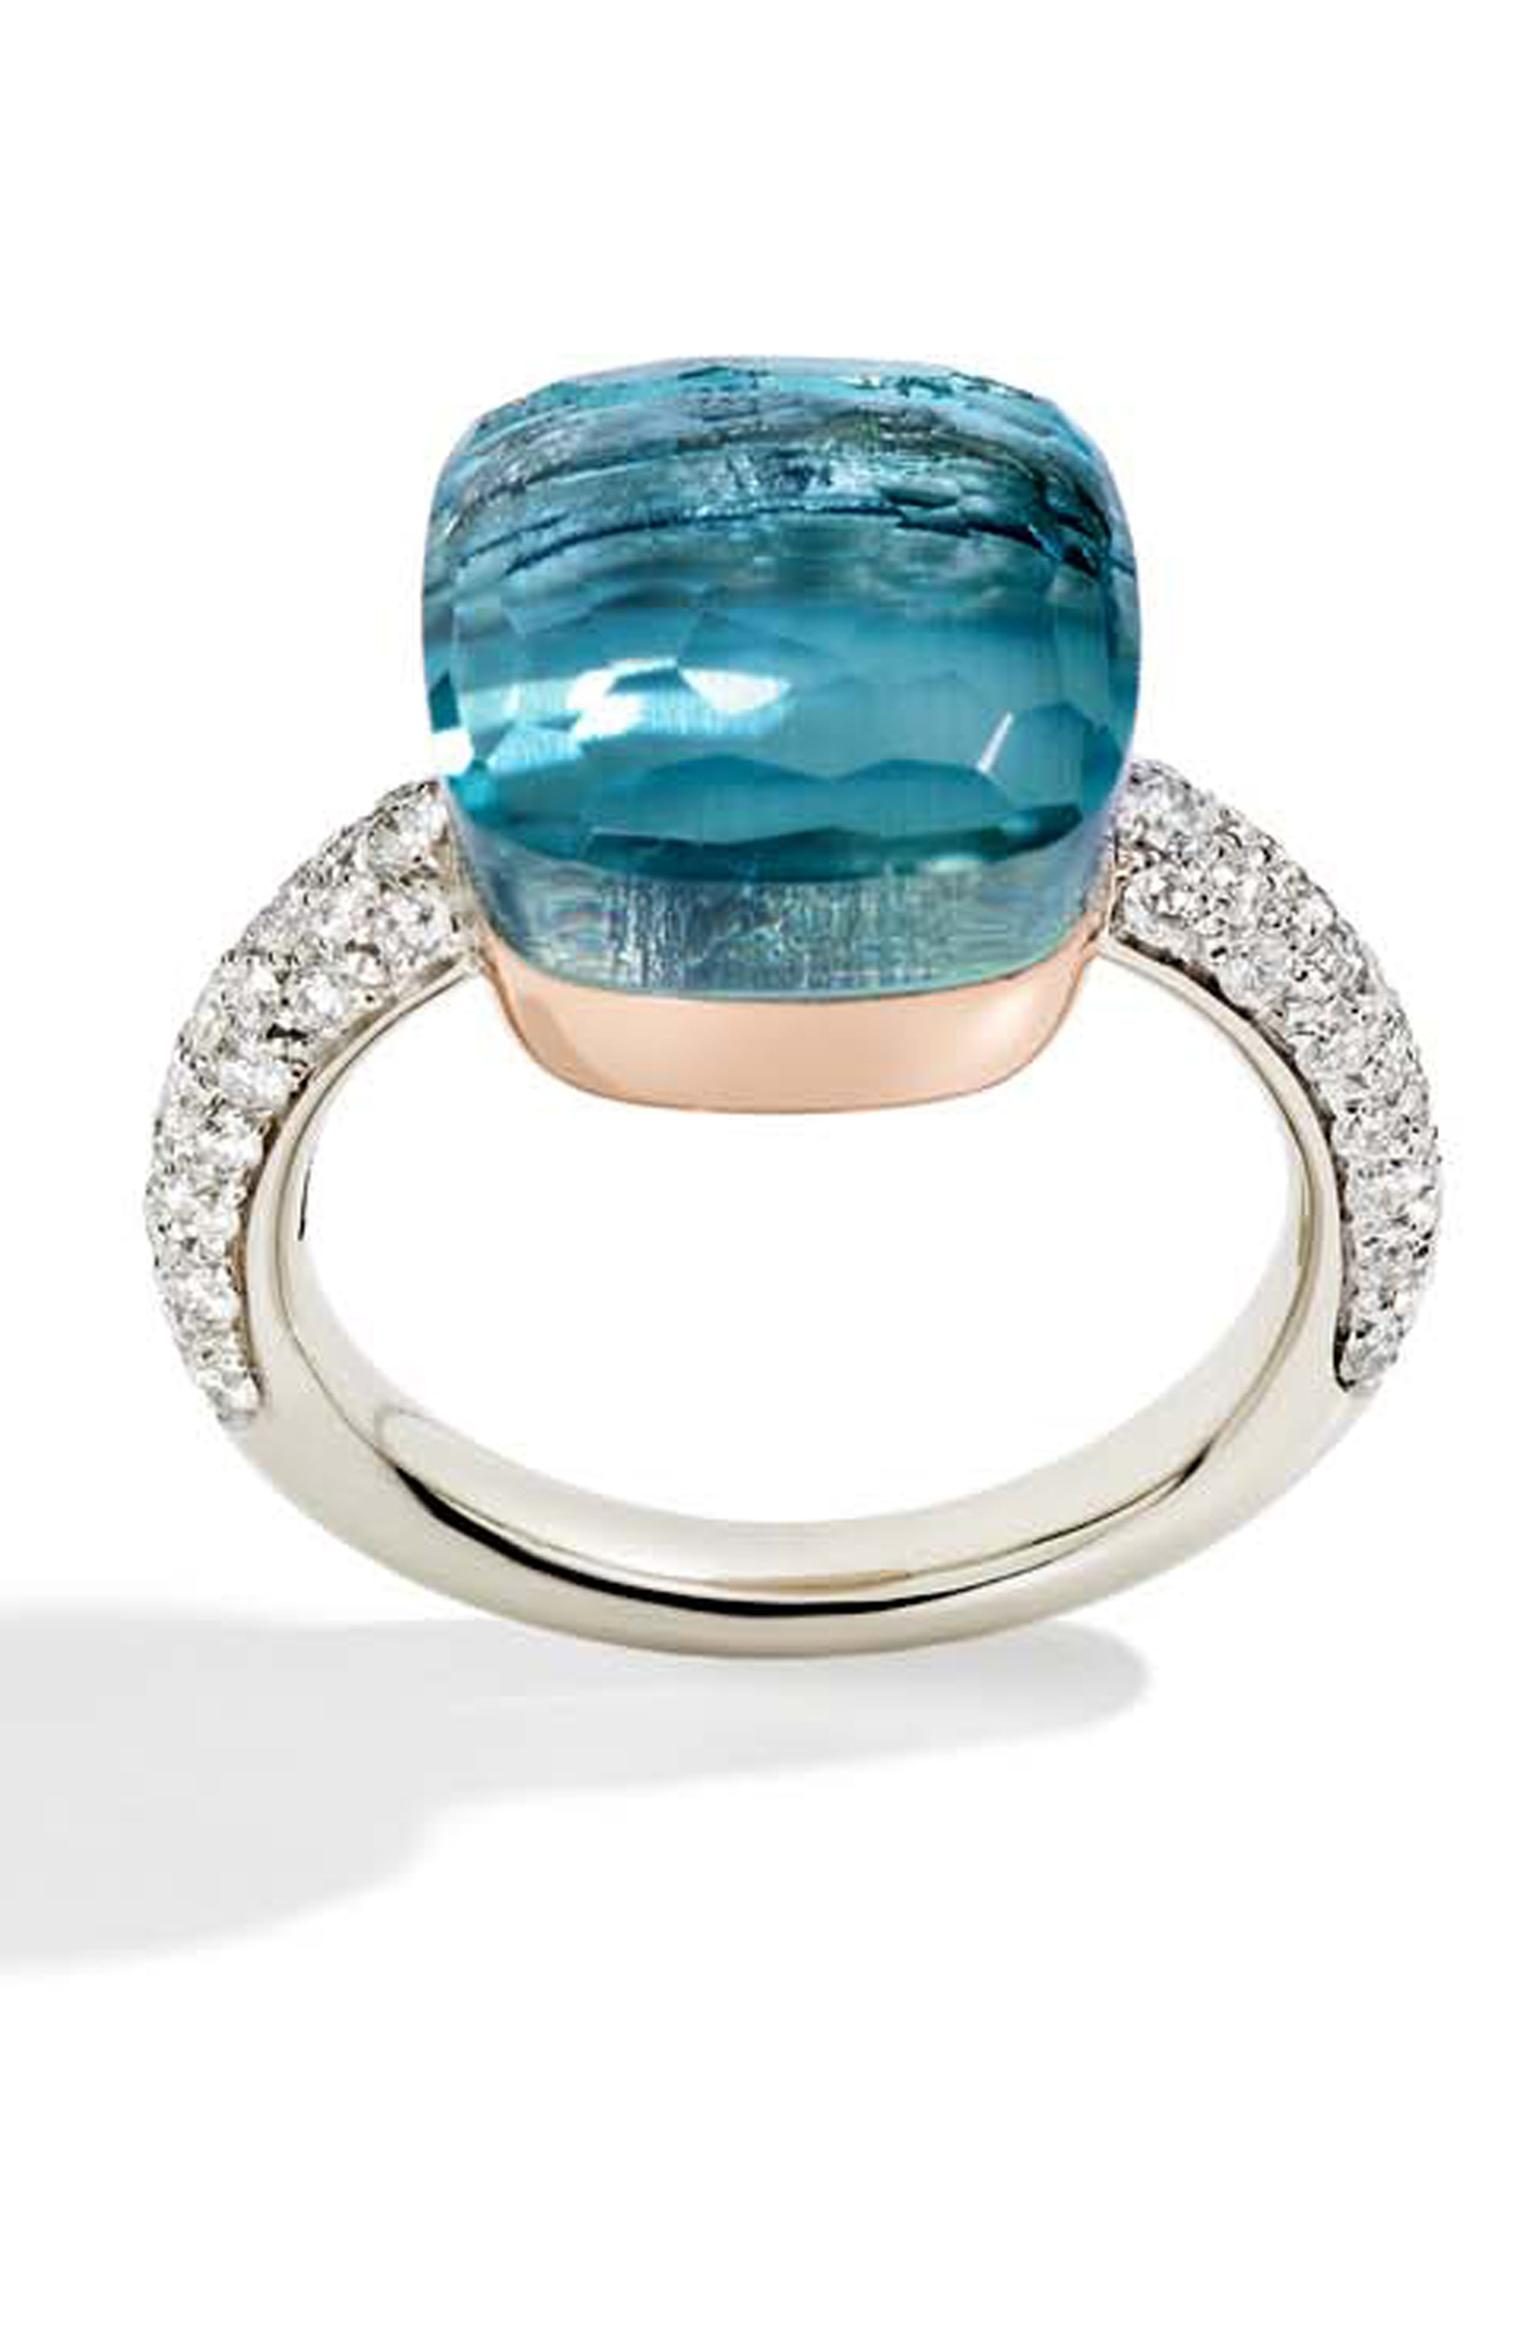 Pomellato Nudo ring in white gold and diamonds, set with a blue topaz.